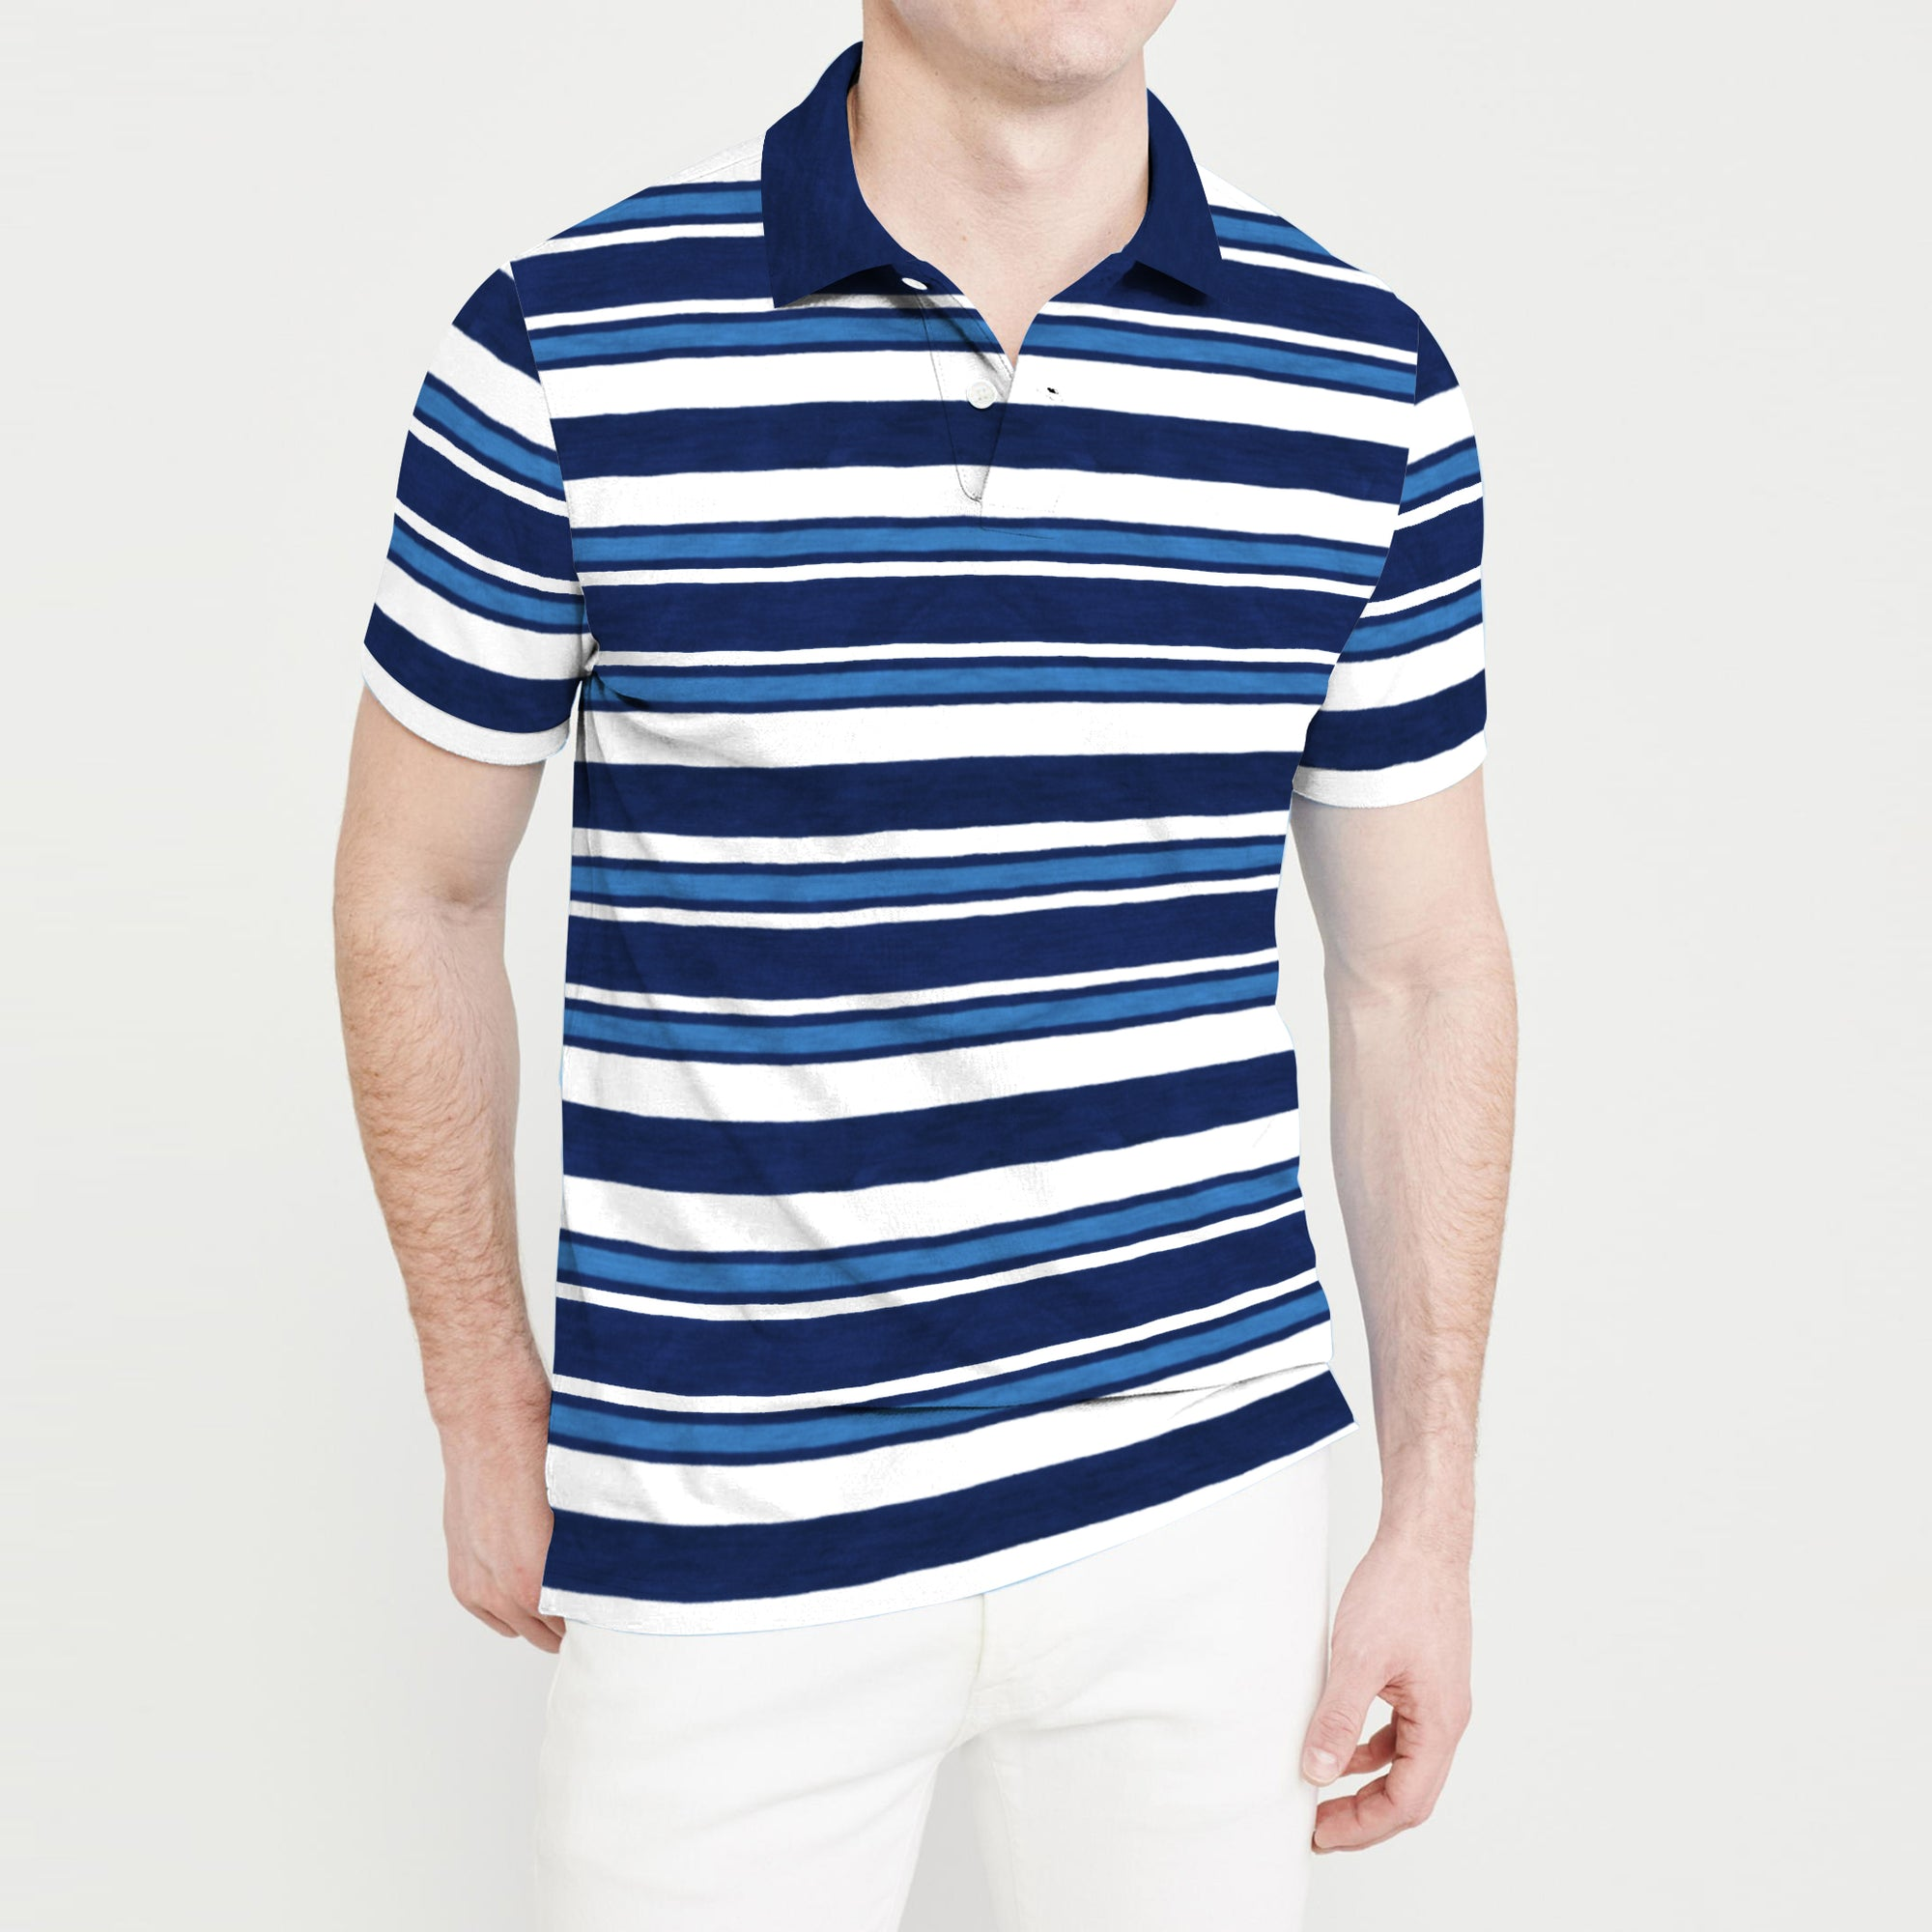 The Modern Short Sleeve Single Jersey Polo Shirt For Men-Navy Stripe-BE8314